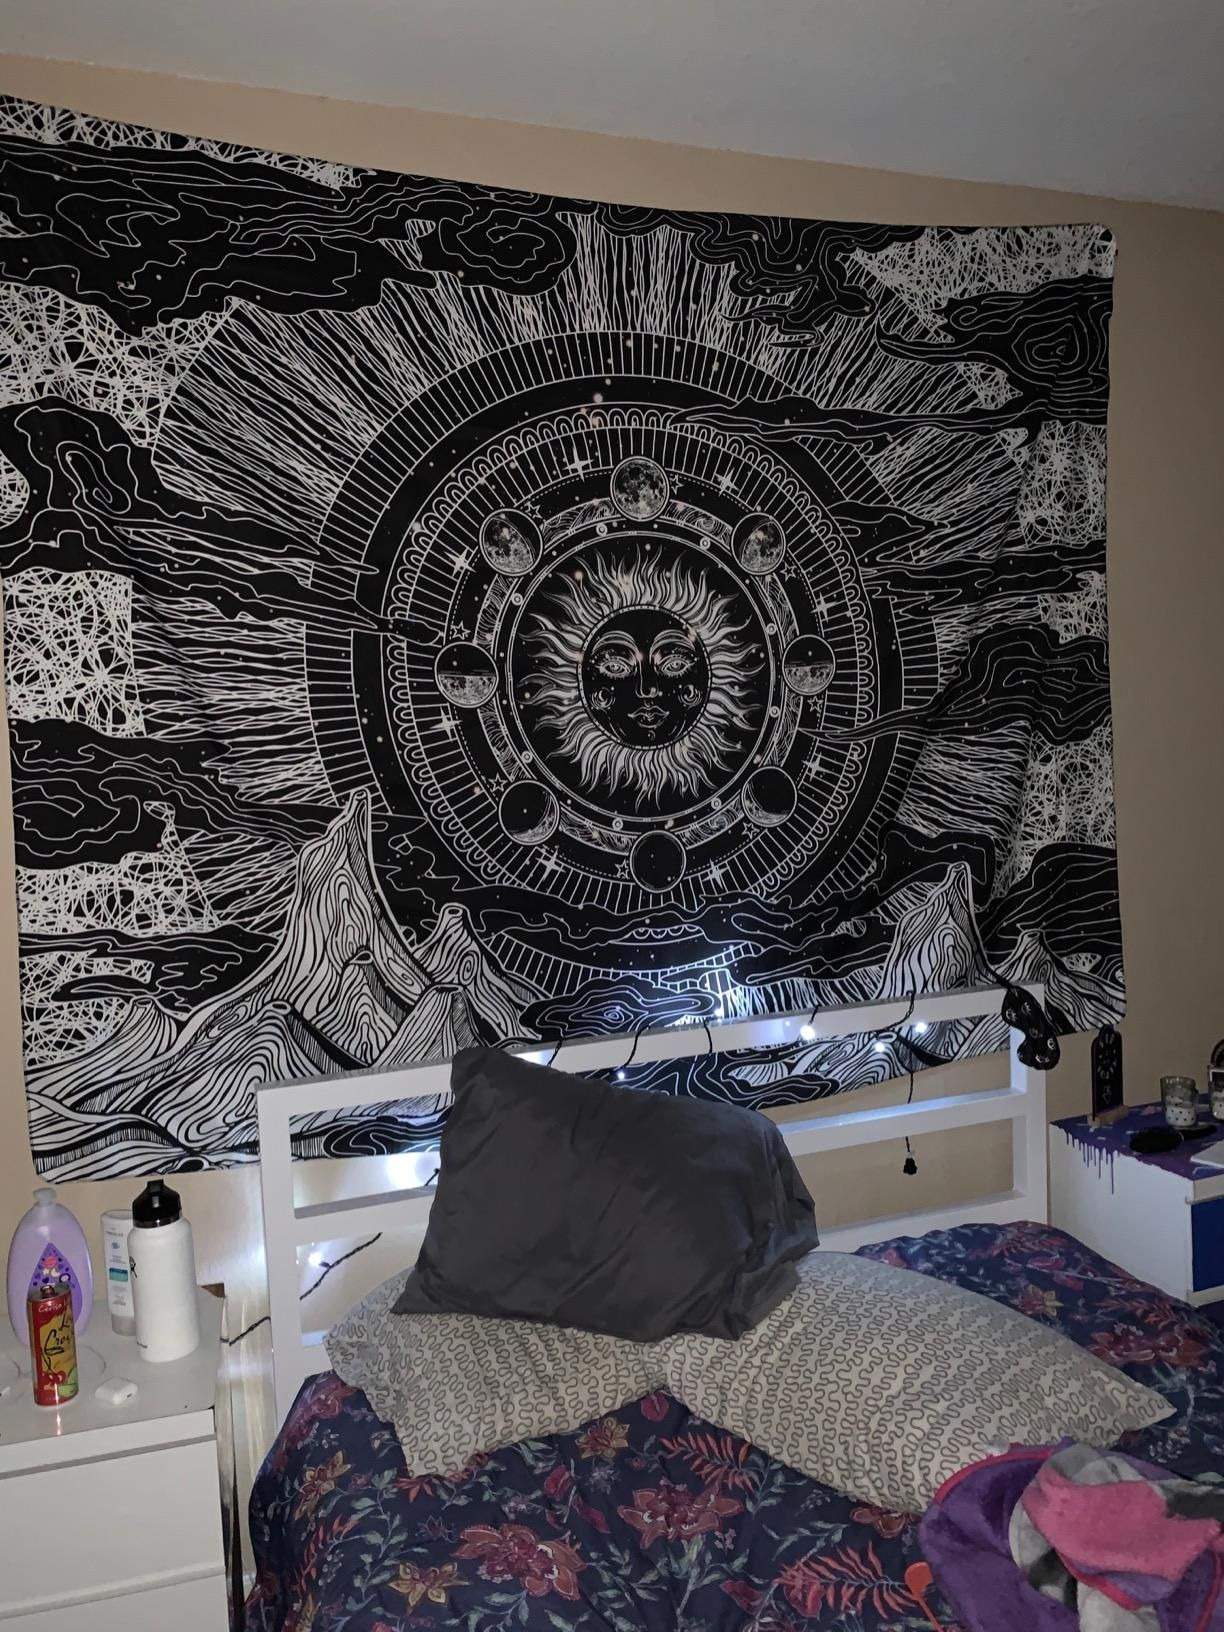 MISSSIXTY Wall Hanging Bedding Tapestry Wall Art Home Decorations for Living Room Bedroom Dorm Decor